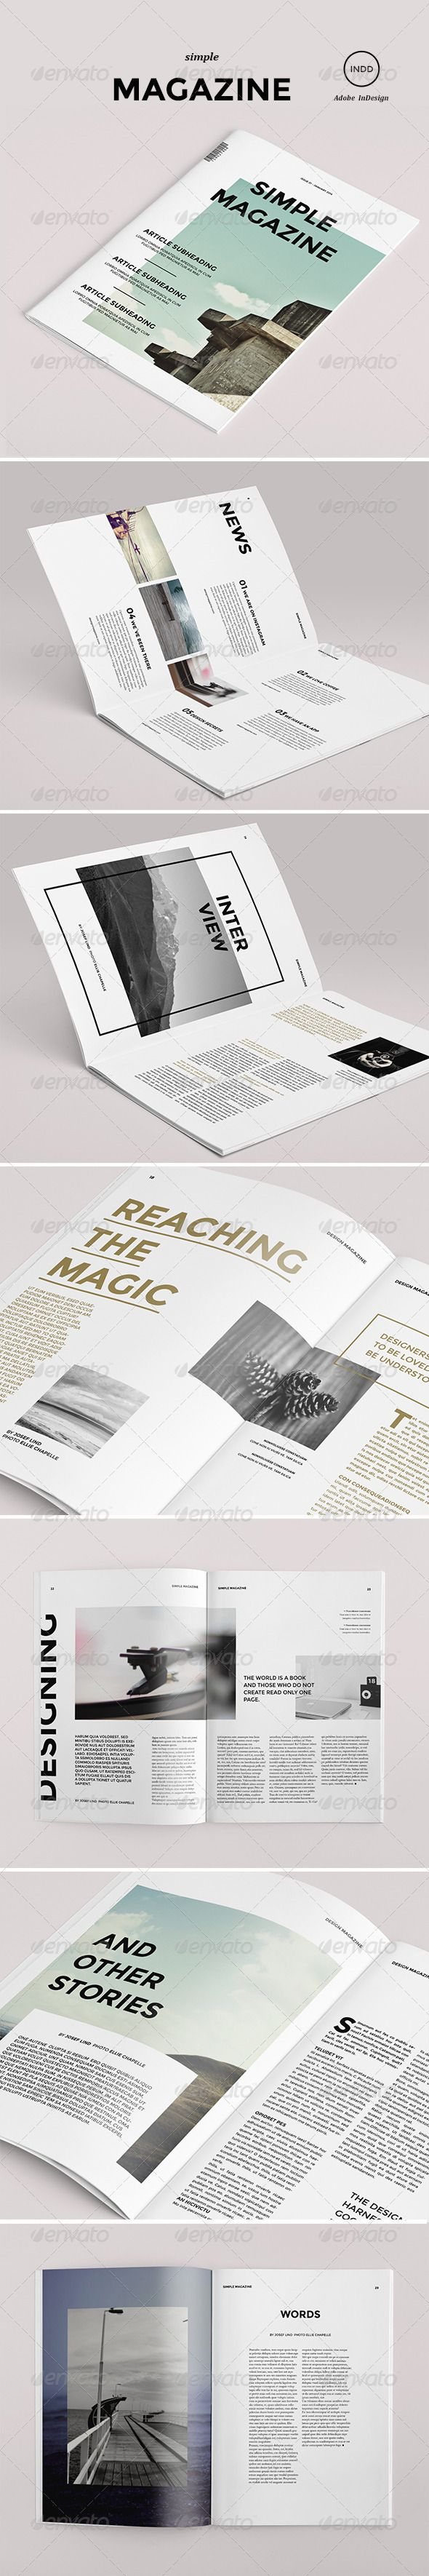 Simple Magazine - Magazine Print Template. #blackafricagroup #simple #magazine #template #print #minimalistic #clear #type #typography #design #graphicdesign